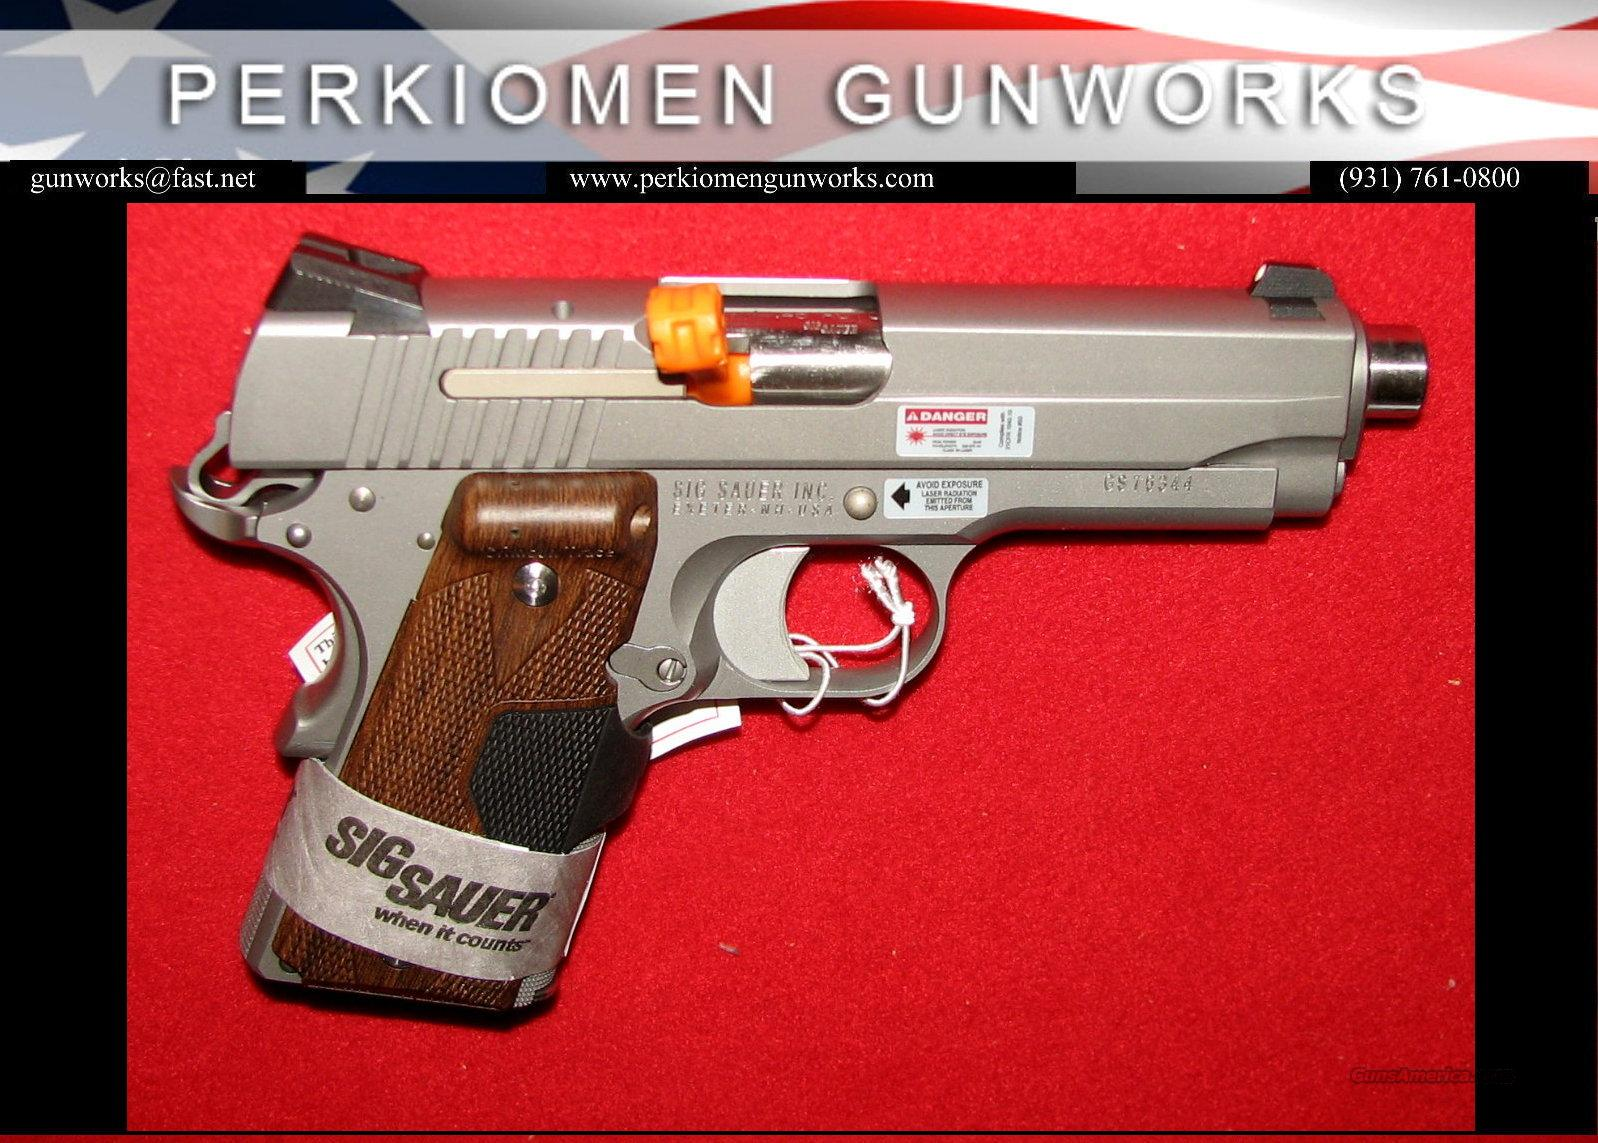 1911CO-45-SSS-CTW, Compact Stainless, 45acp w/Laser Grips-Nite Sights- NIB  Guns > Pistols > Sig - Sauer/Sigarms Pistols > 1911